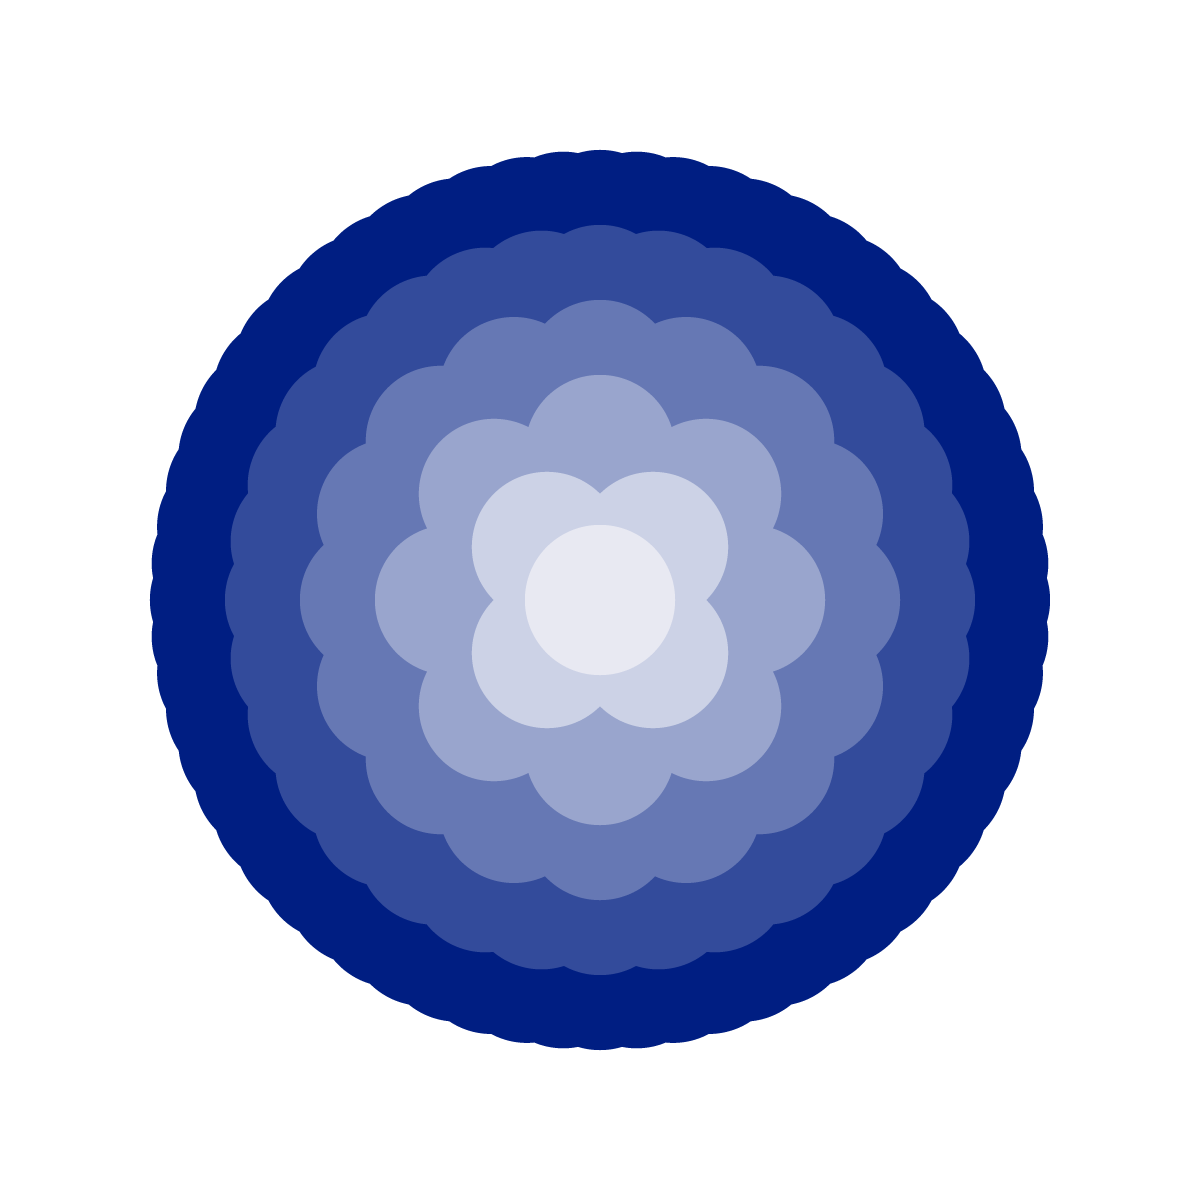 Minimalvision 3 – Philosophical Pril flower, Geometry, Minimal, Drawing